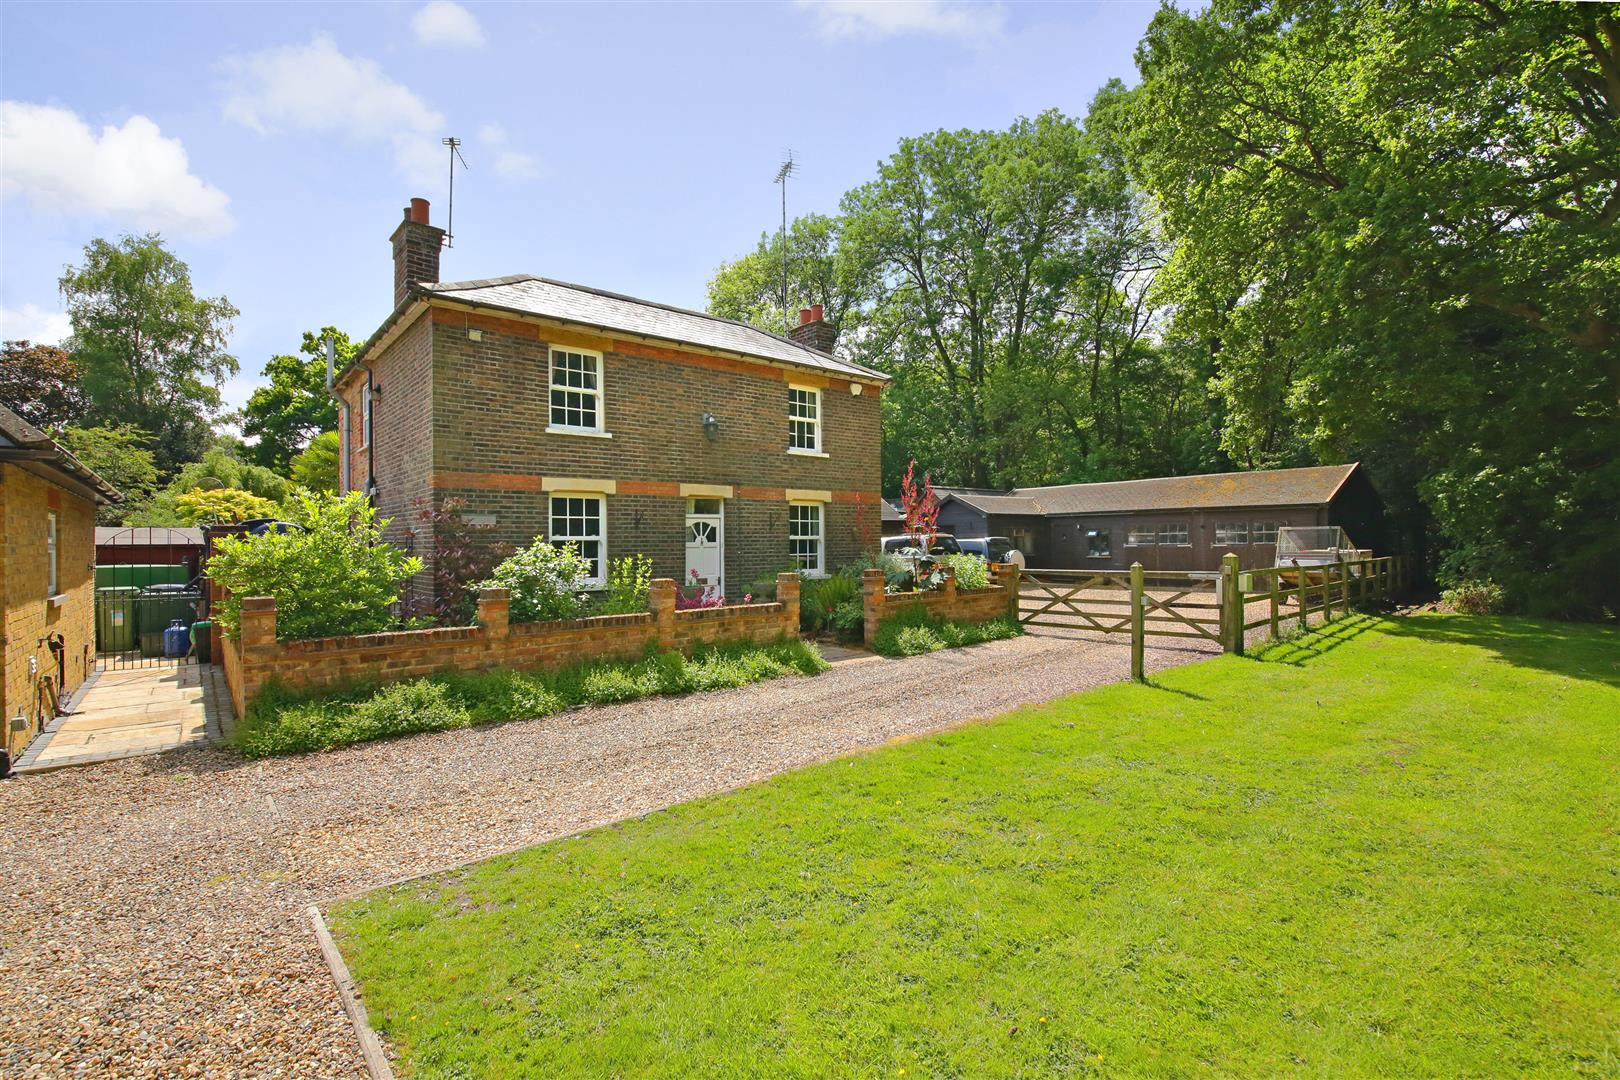 3 bed for sale in Station Road, Bricket Wood - (Property Image 16)